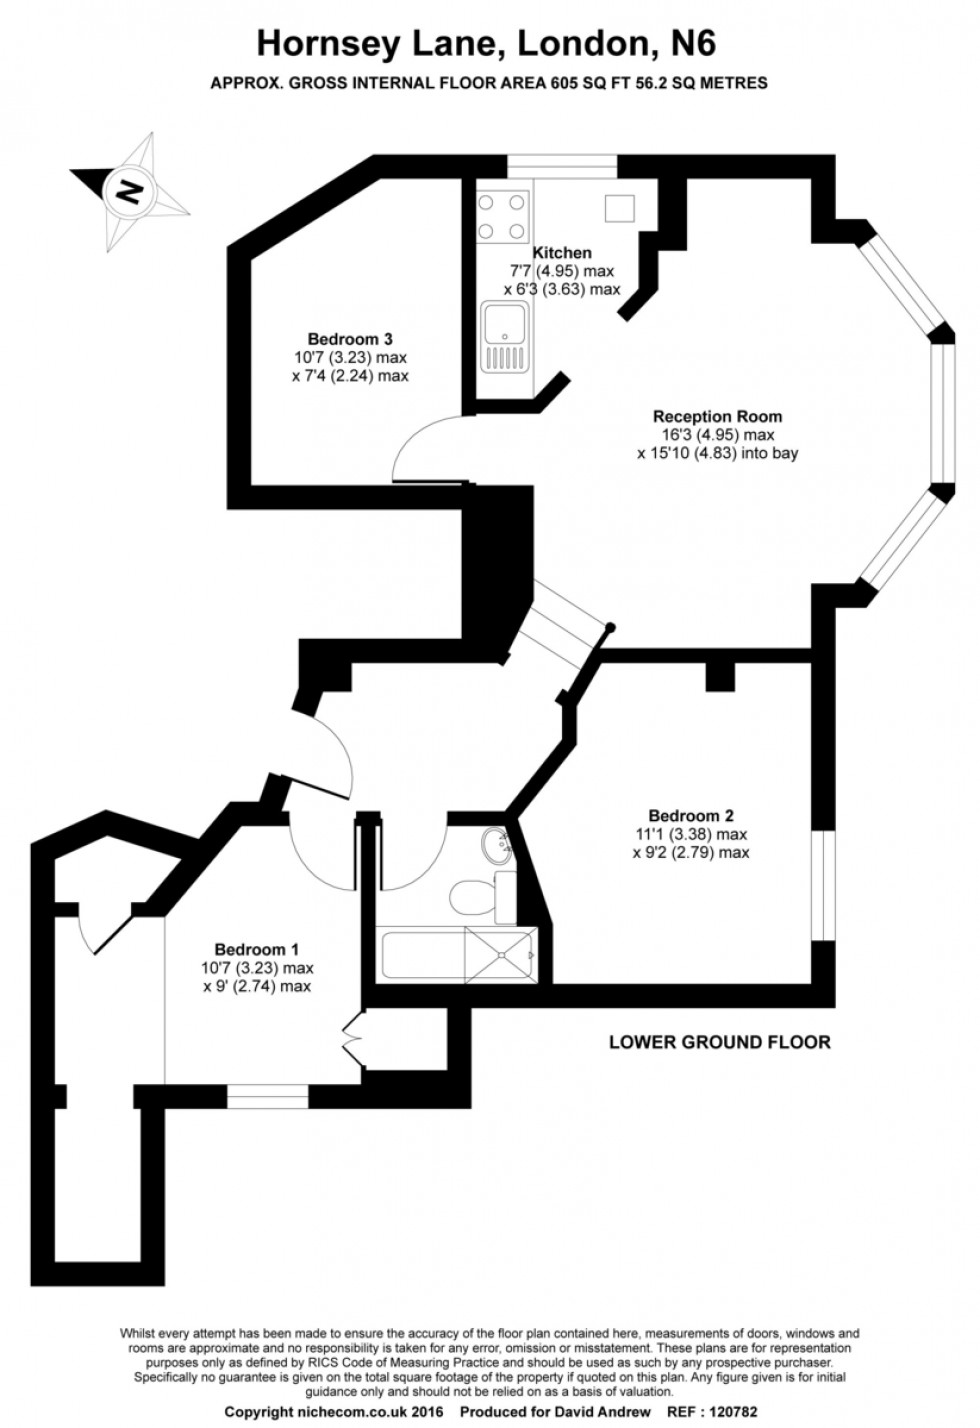 Floorplan for Hornsey Lane, N6 5LW